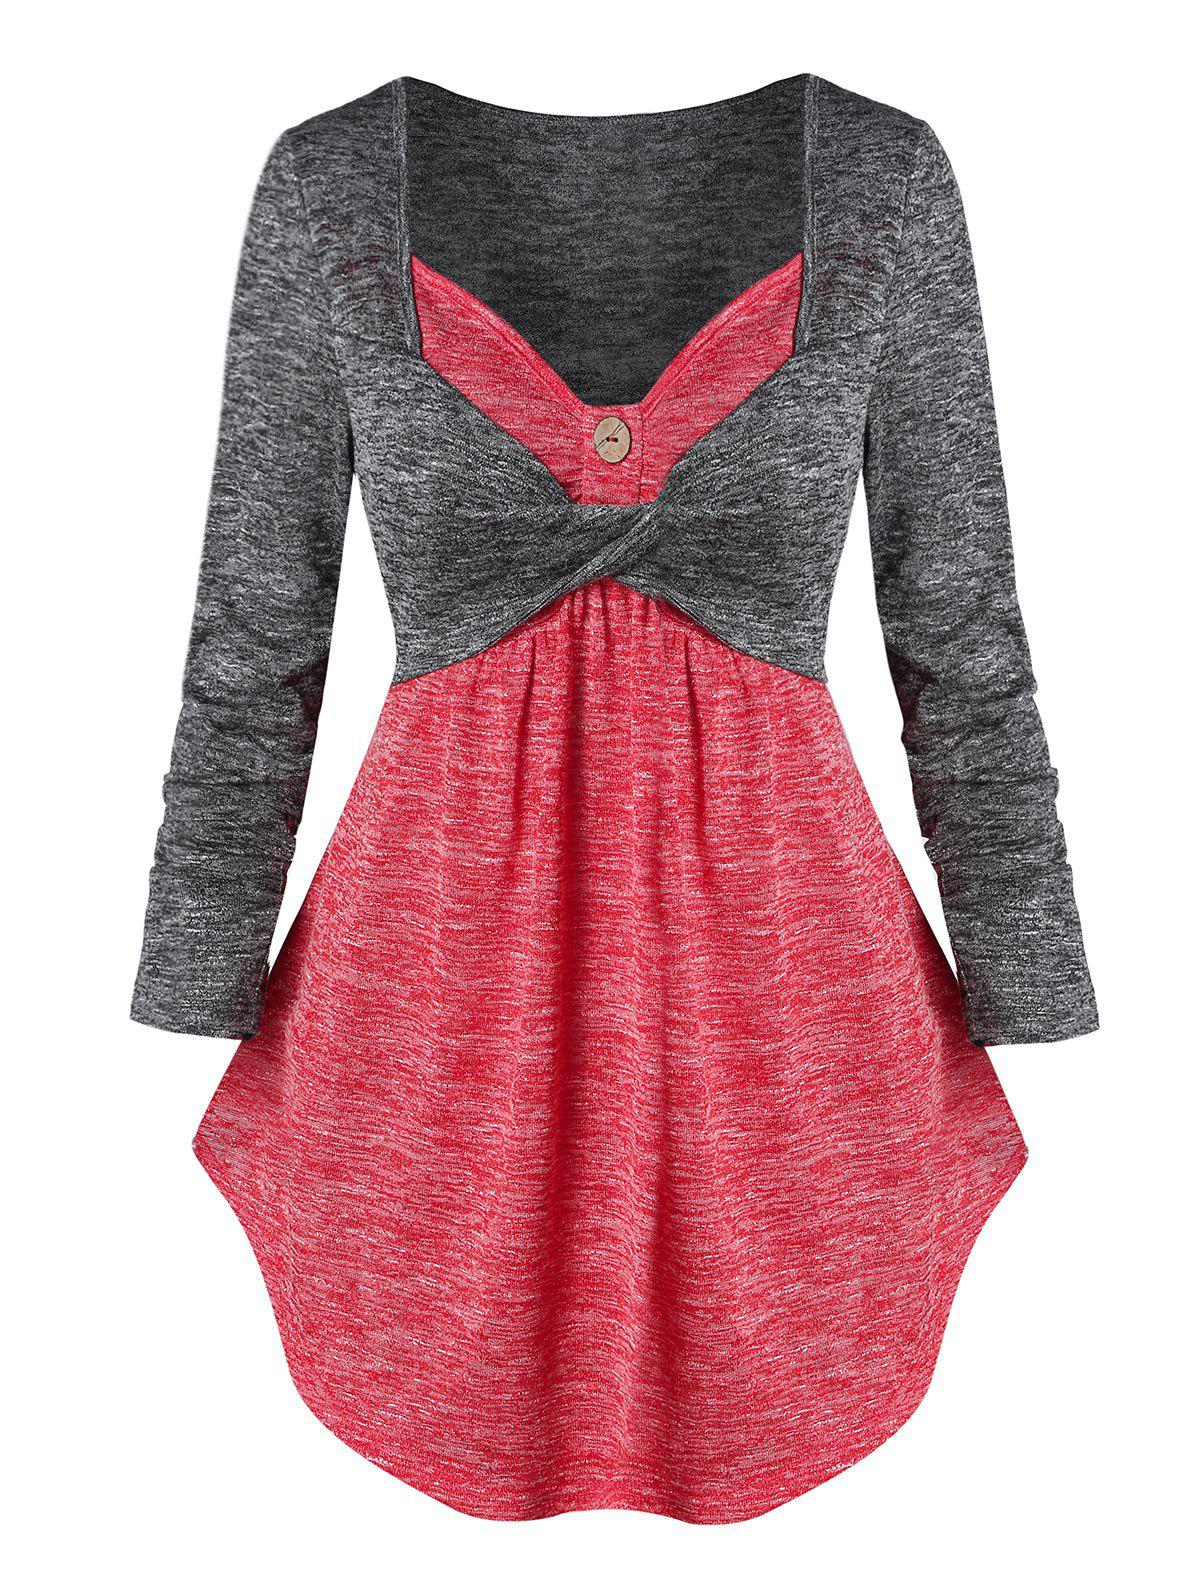 Twist Front Contrast Heathered 2 in 1 Knitwear - RED 3XL